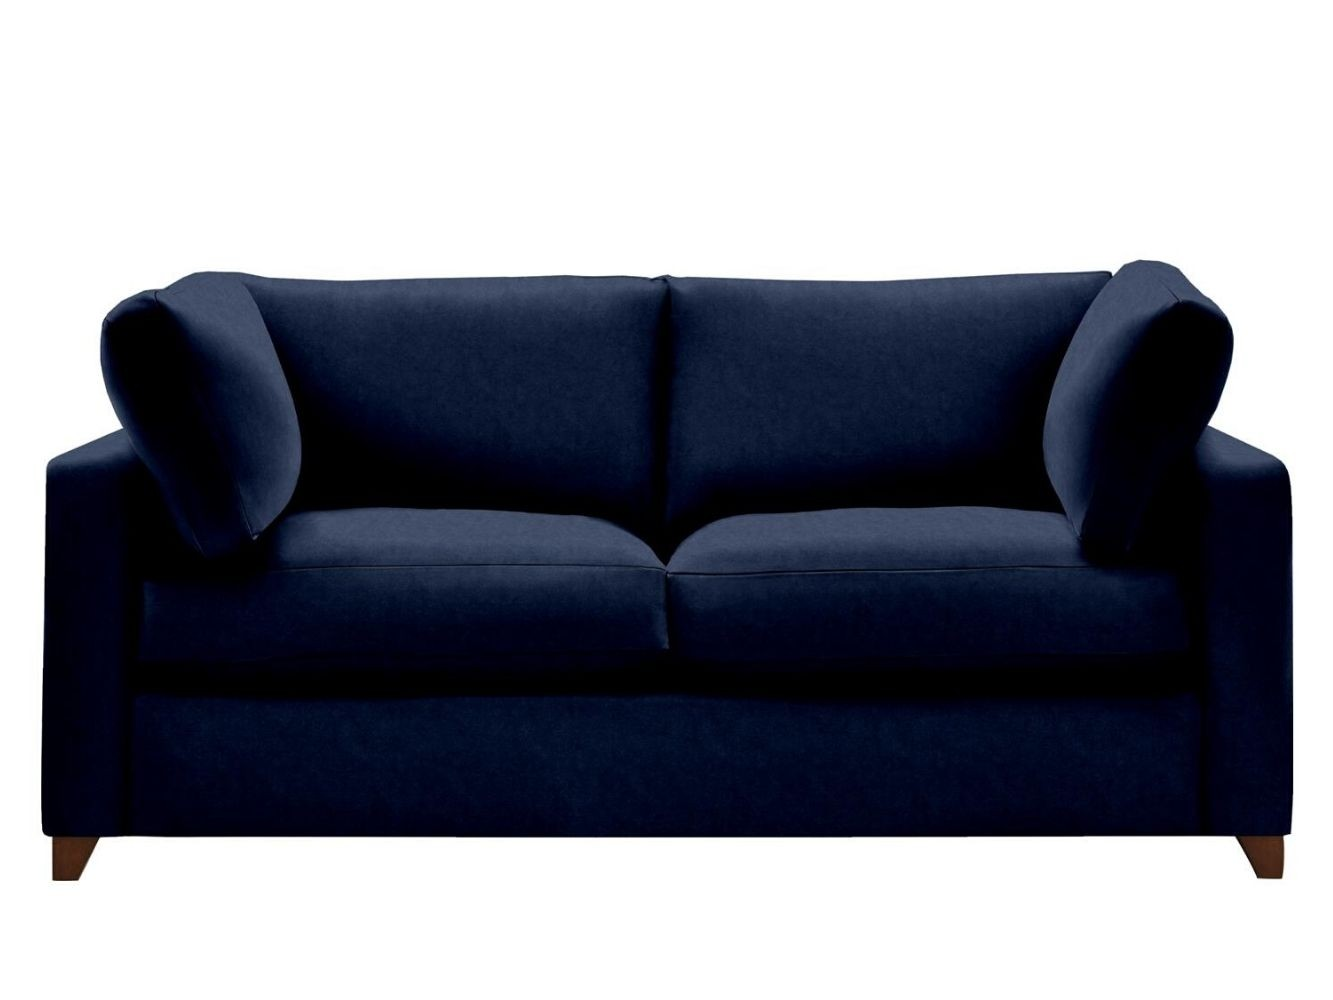 This is how I look in Cotton Velvet Admiral with feather-wrapped foam seat cushions